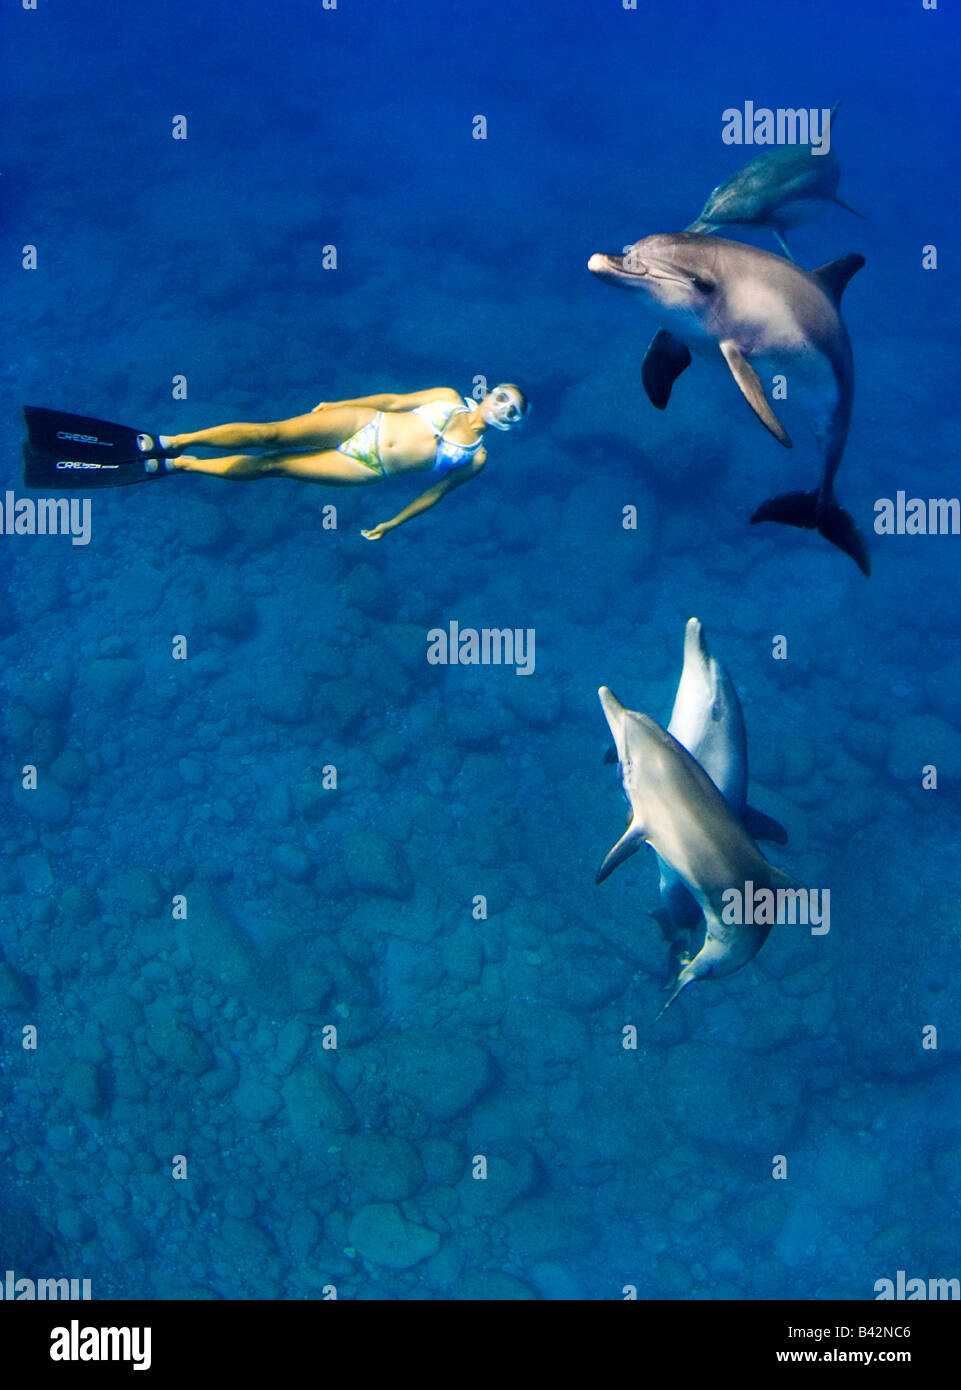 Indo Pacific Bottlenose Dolphins and Freediver Tursiops aduncus Mukojima Group Ogasawara Islands Pacific Ocean Japan Stock Photo